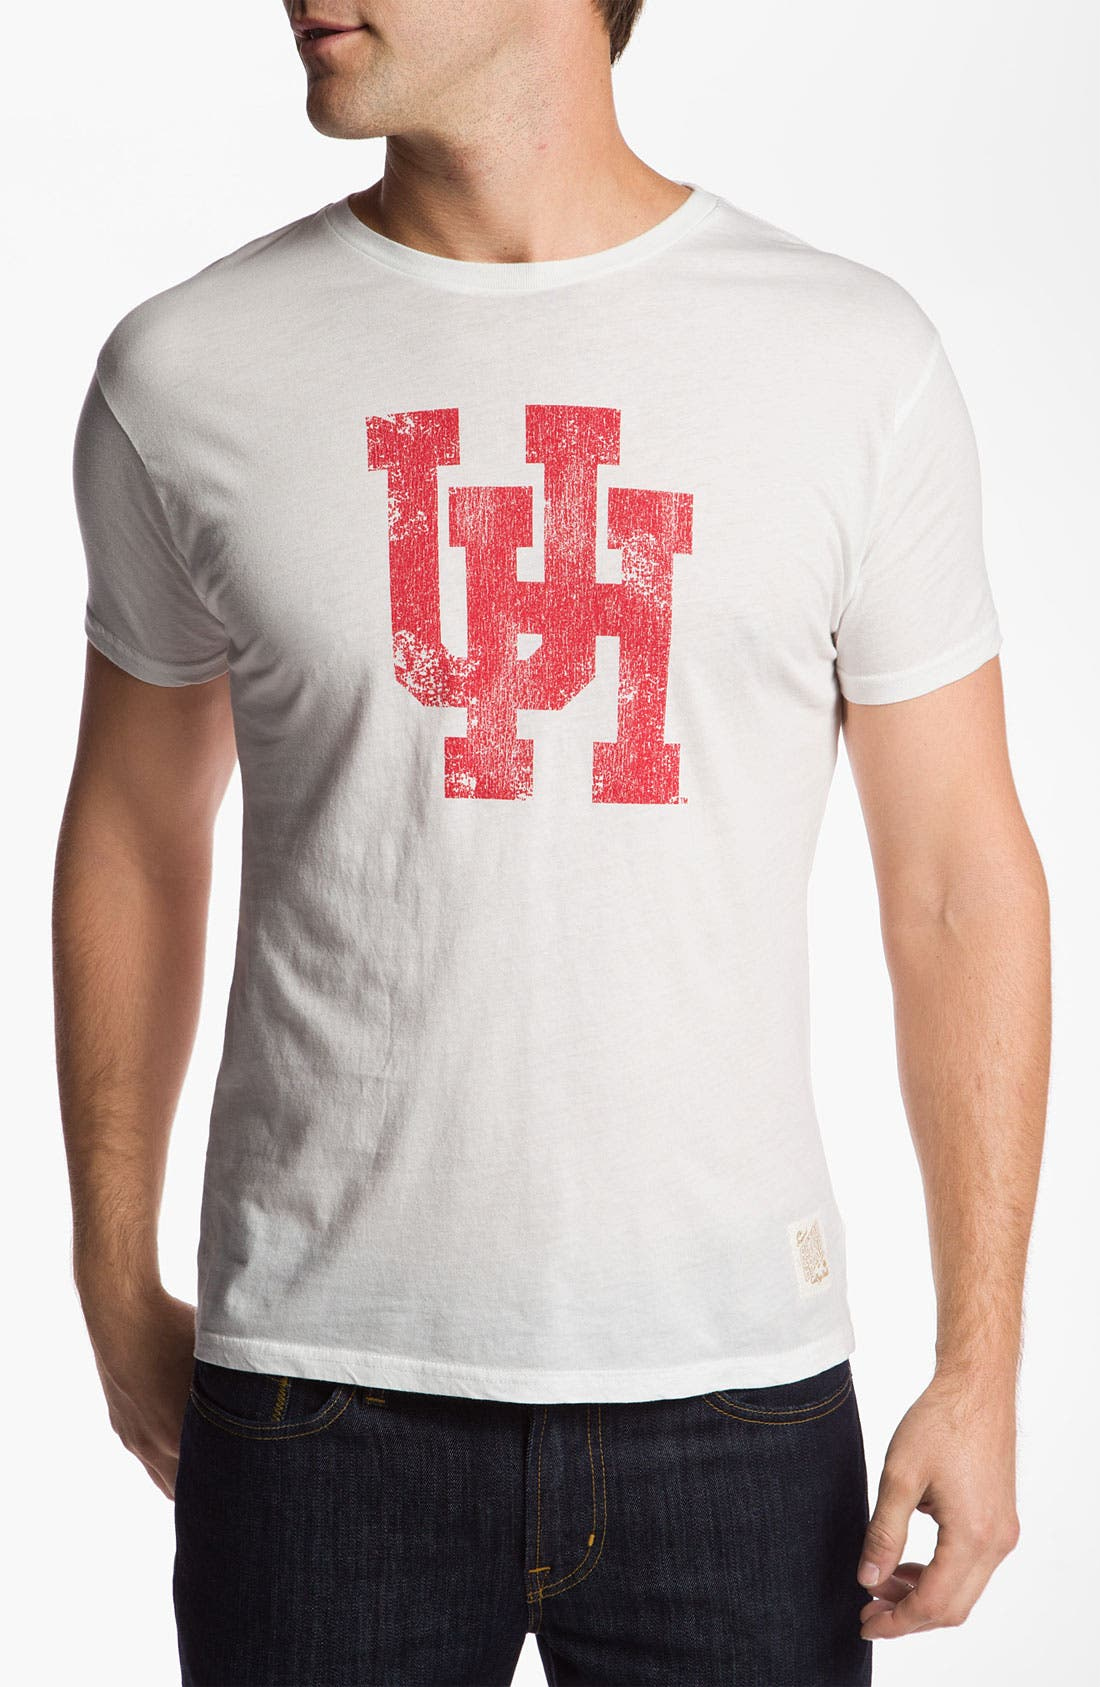 Alternate Image 1 Selected - The Original Retro Brand 'Houston Cougars' T-Shirt